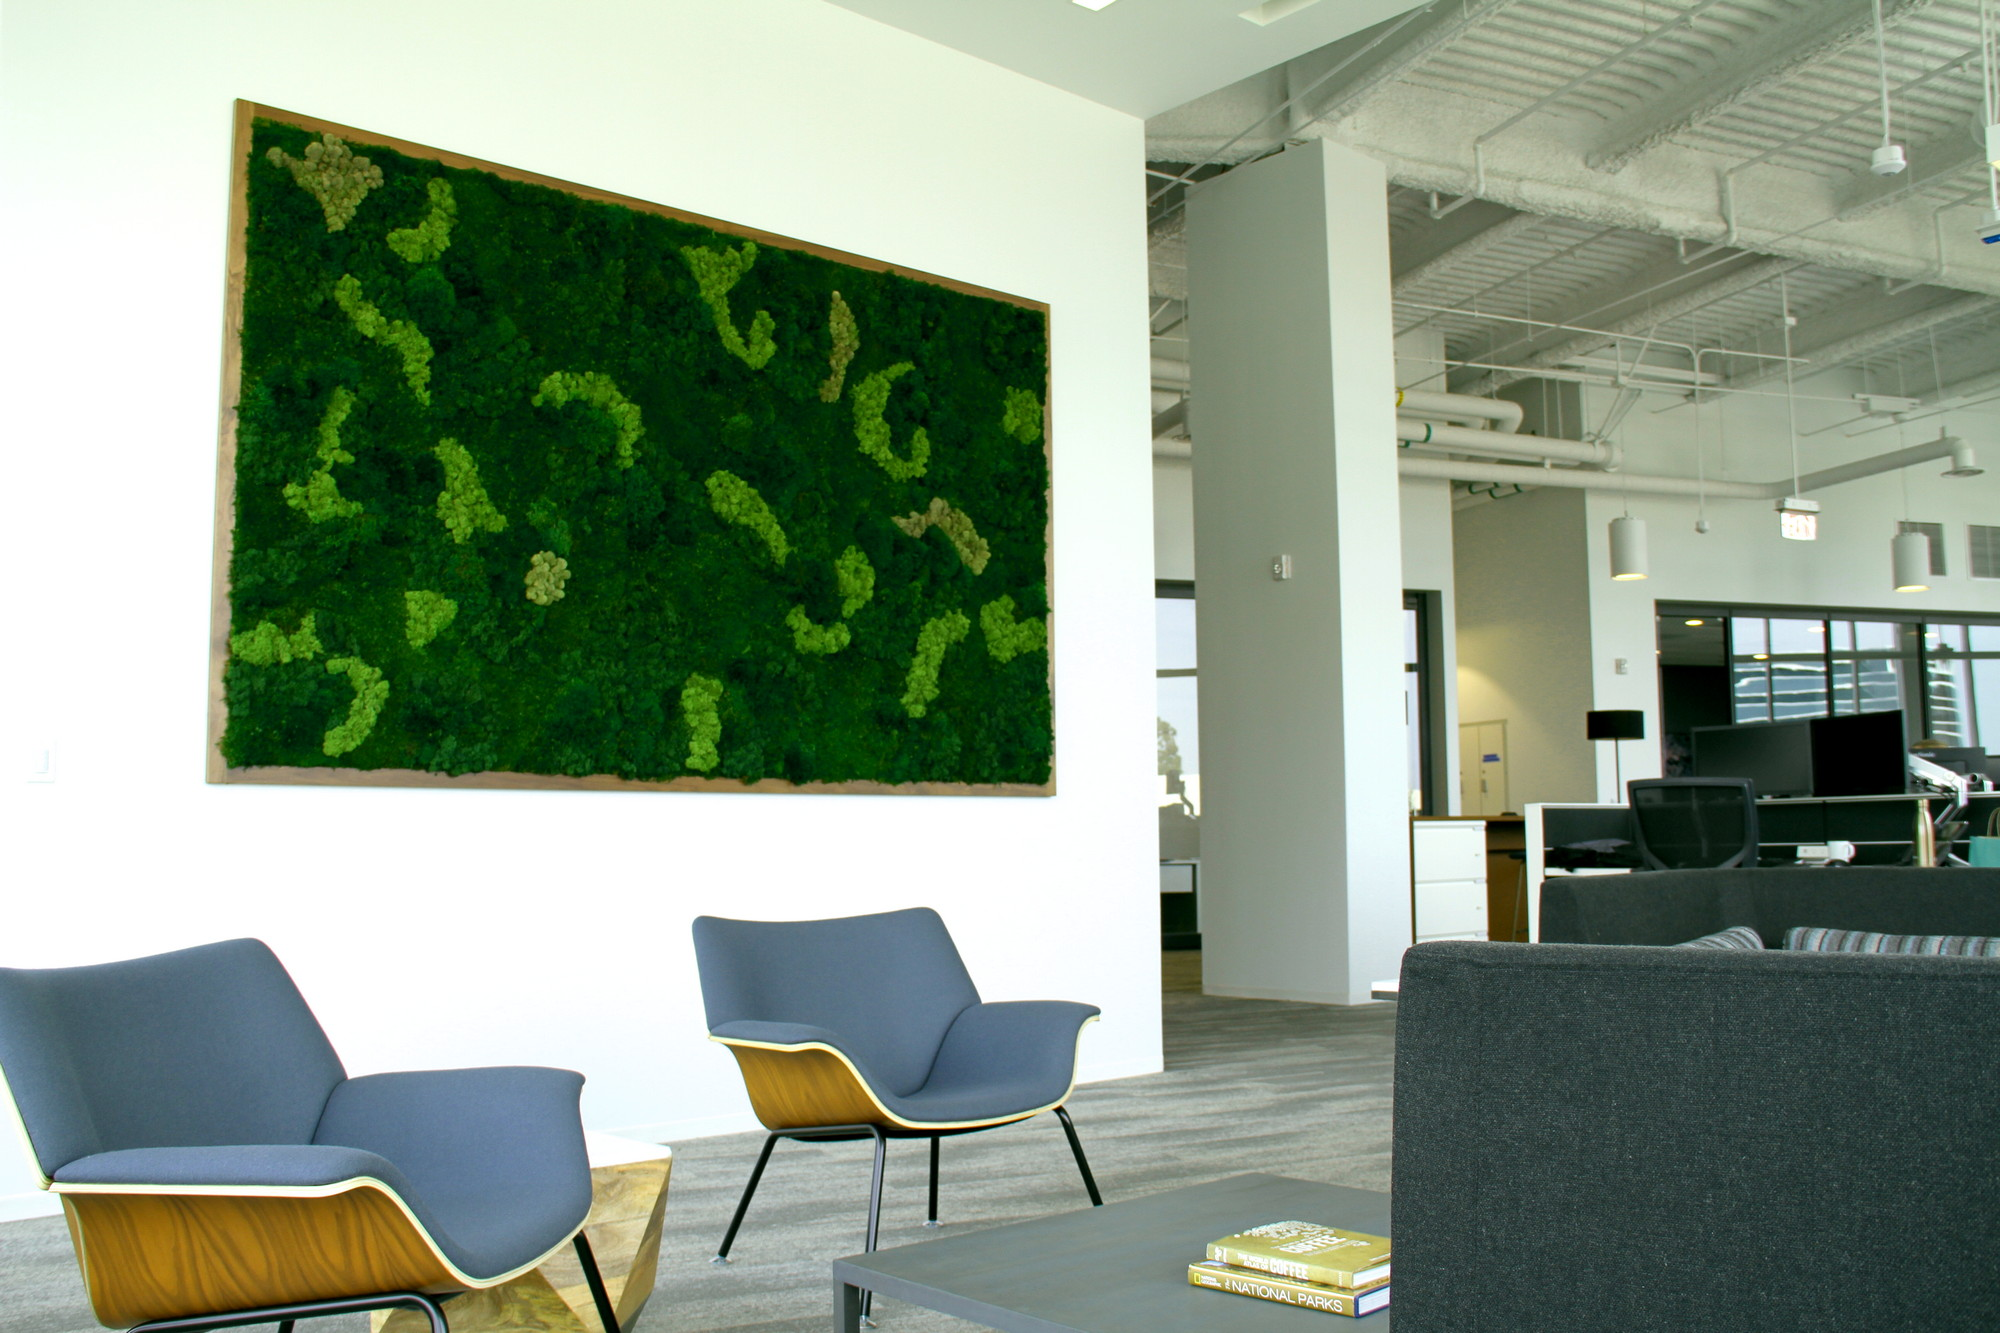 Moss walls in San Diego can be tailored to fit any space requirements